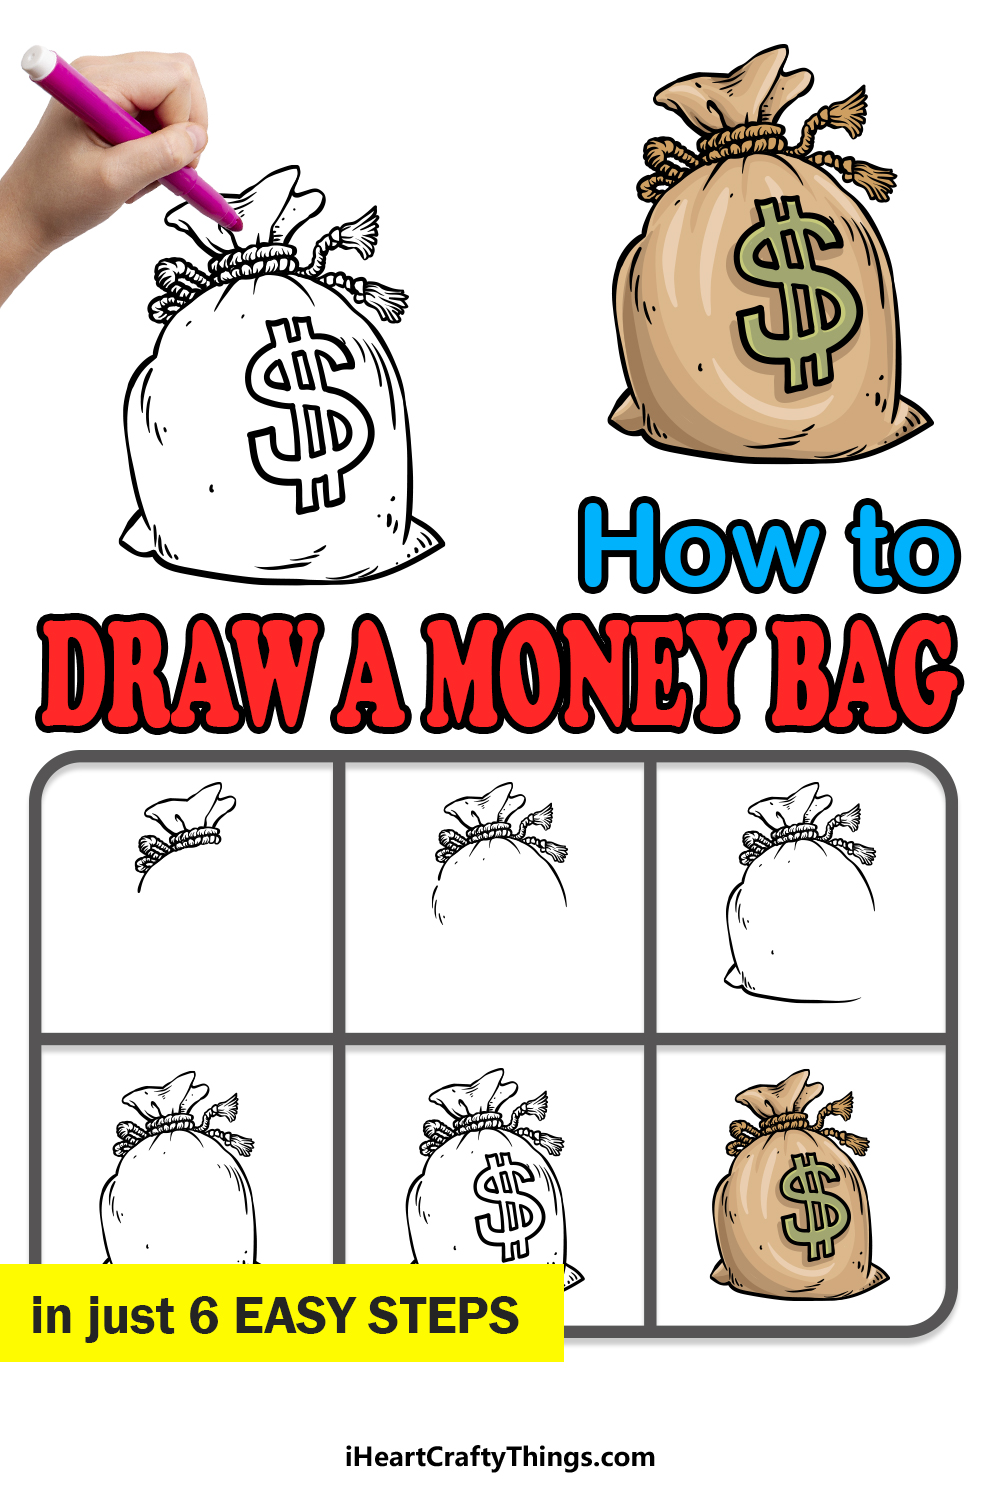 how to draw a money bag in 6 easy steps